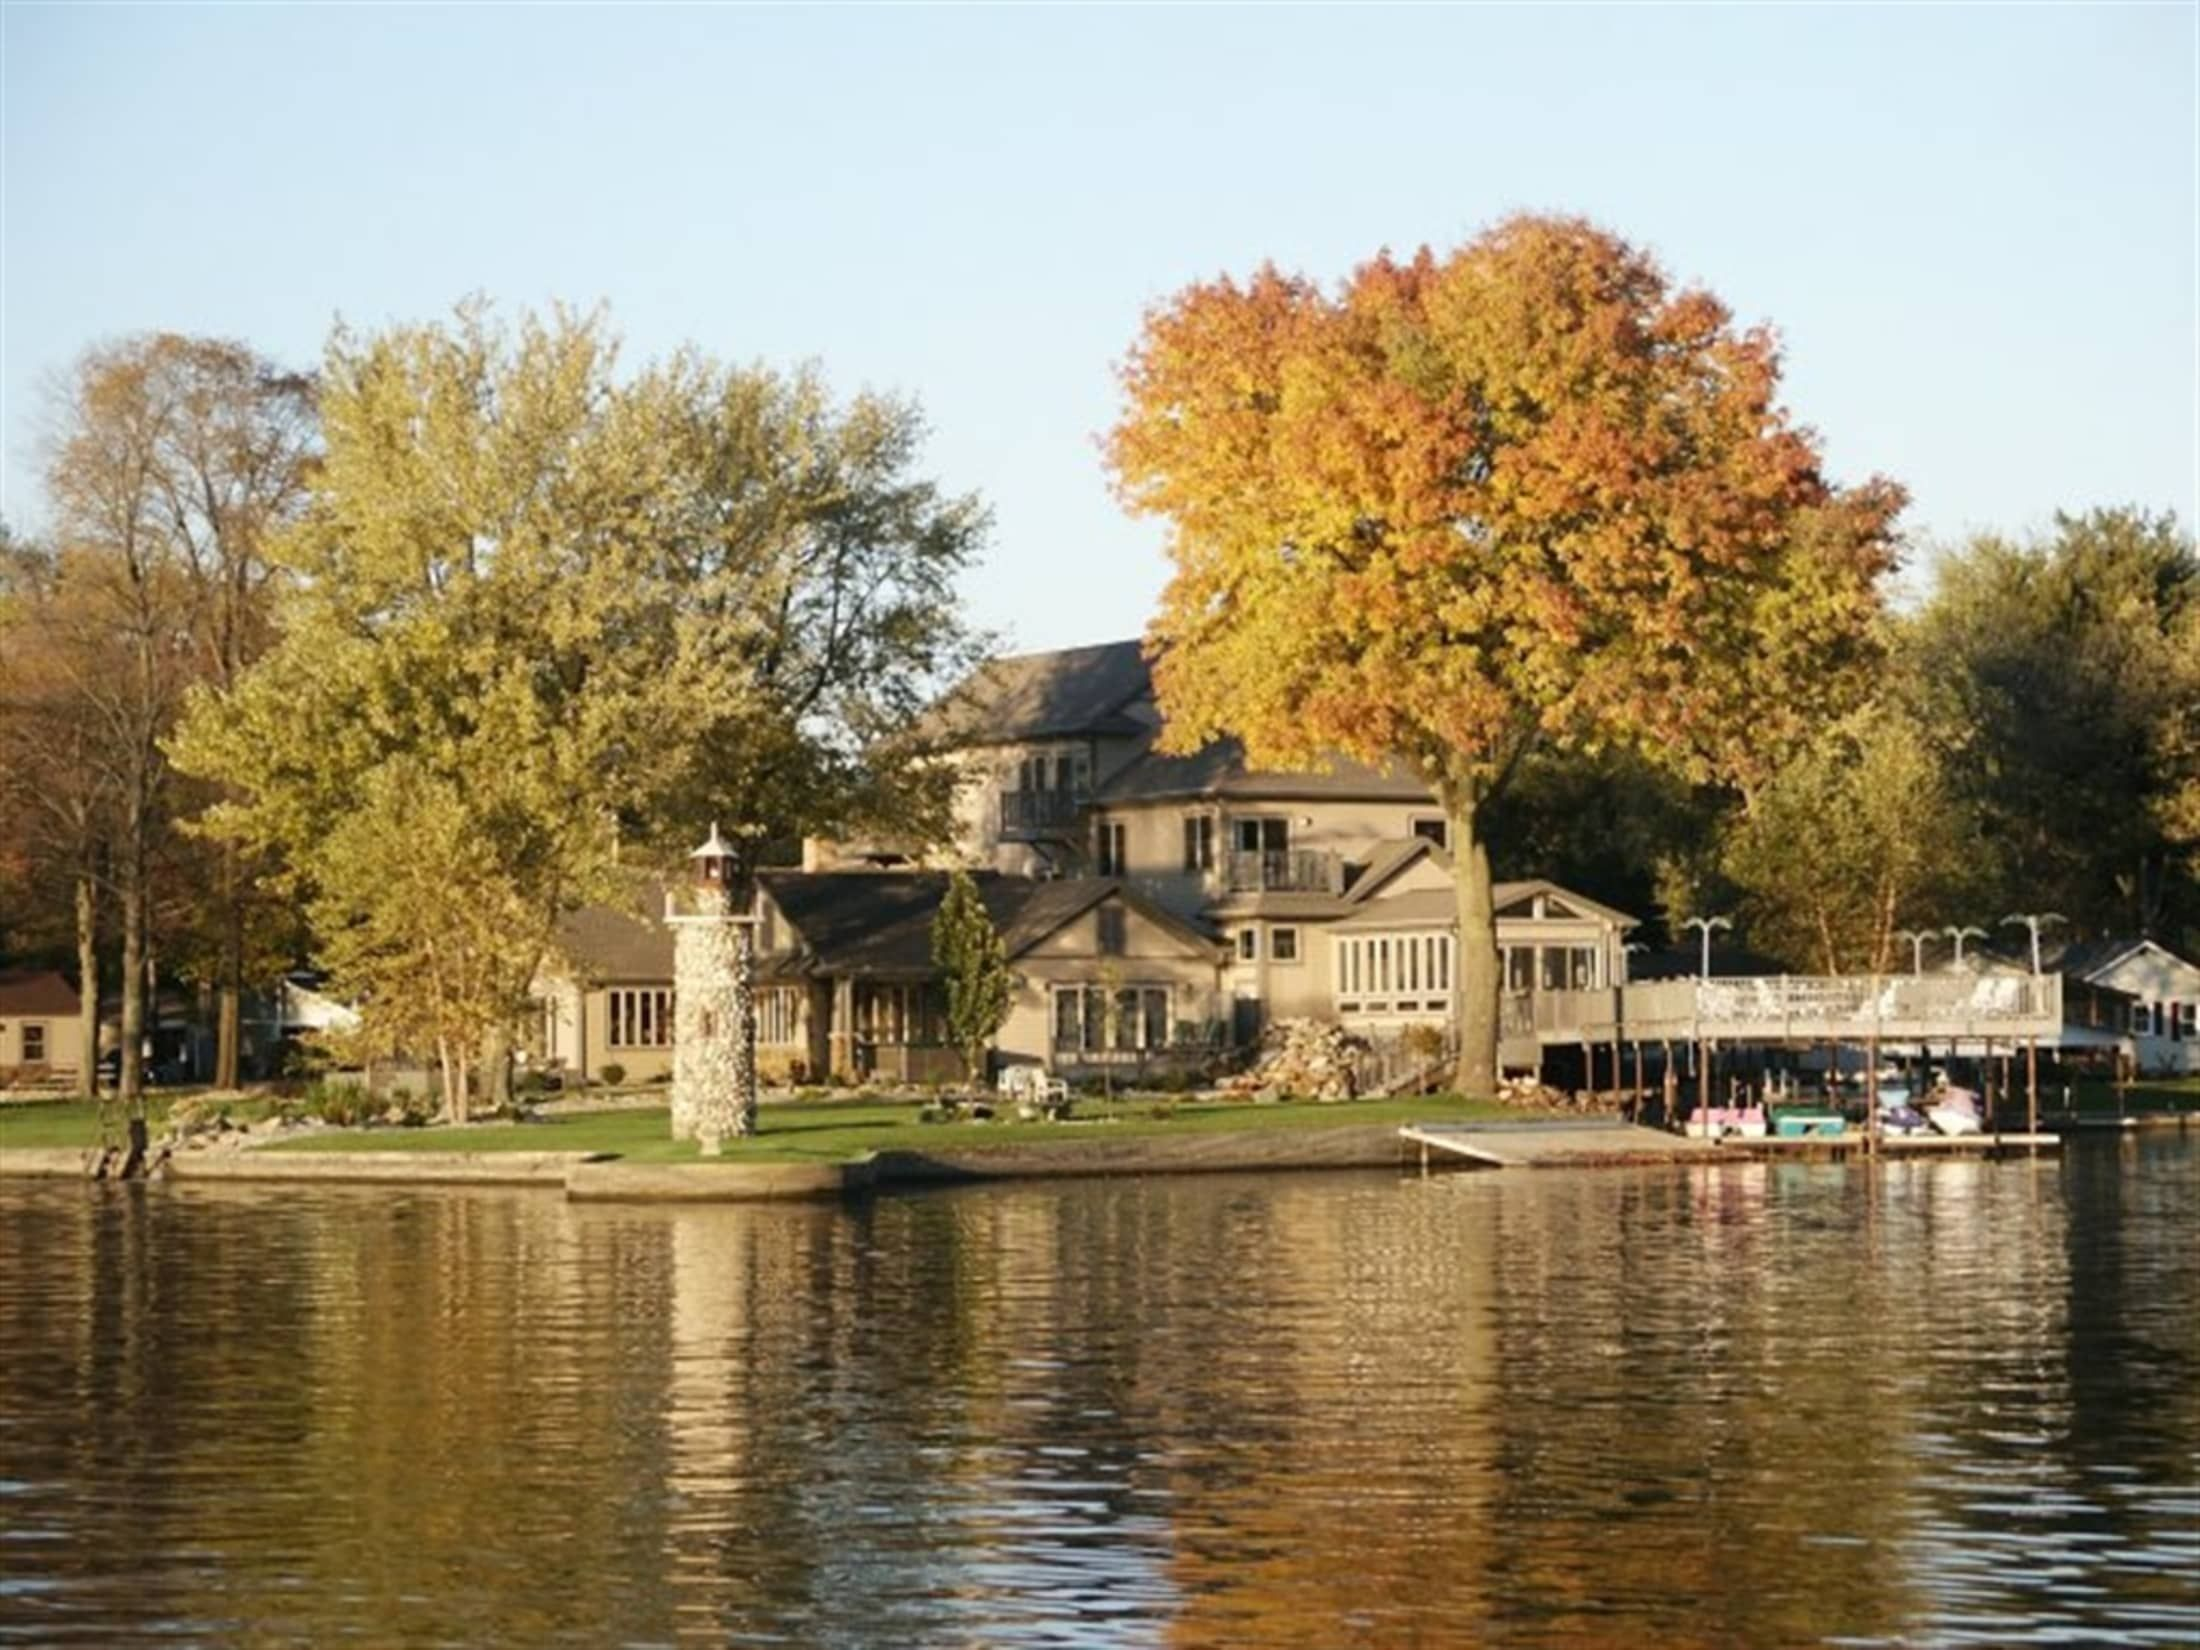 Bed & breakfast and cottage rentals located on beautiful